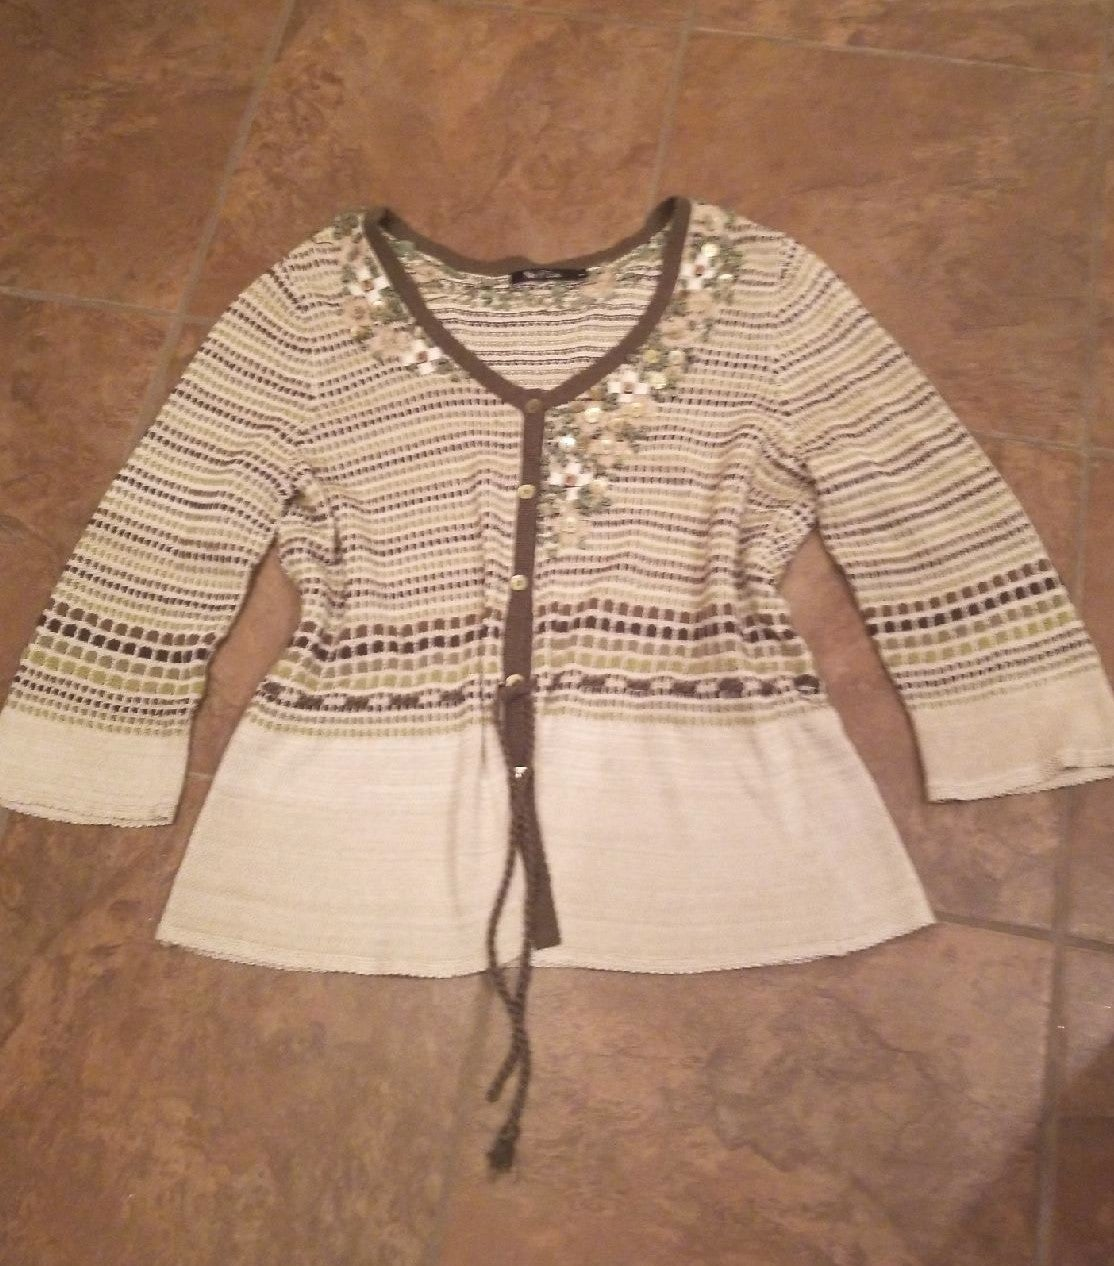 Womens clothes vintage knit top